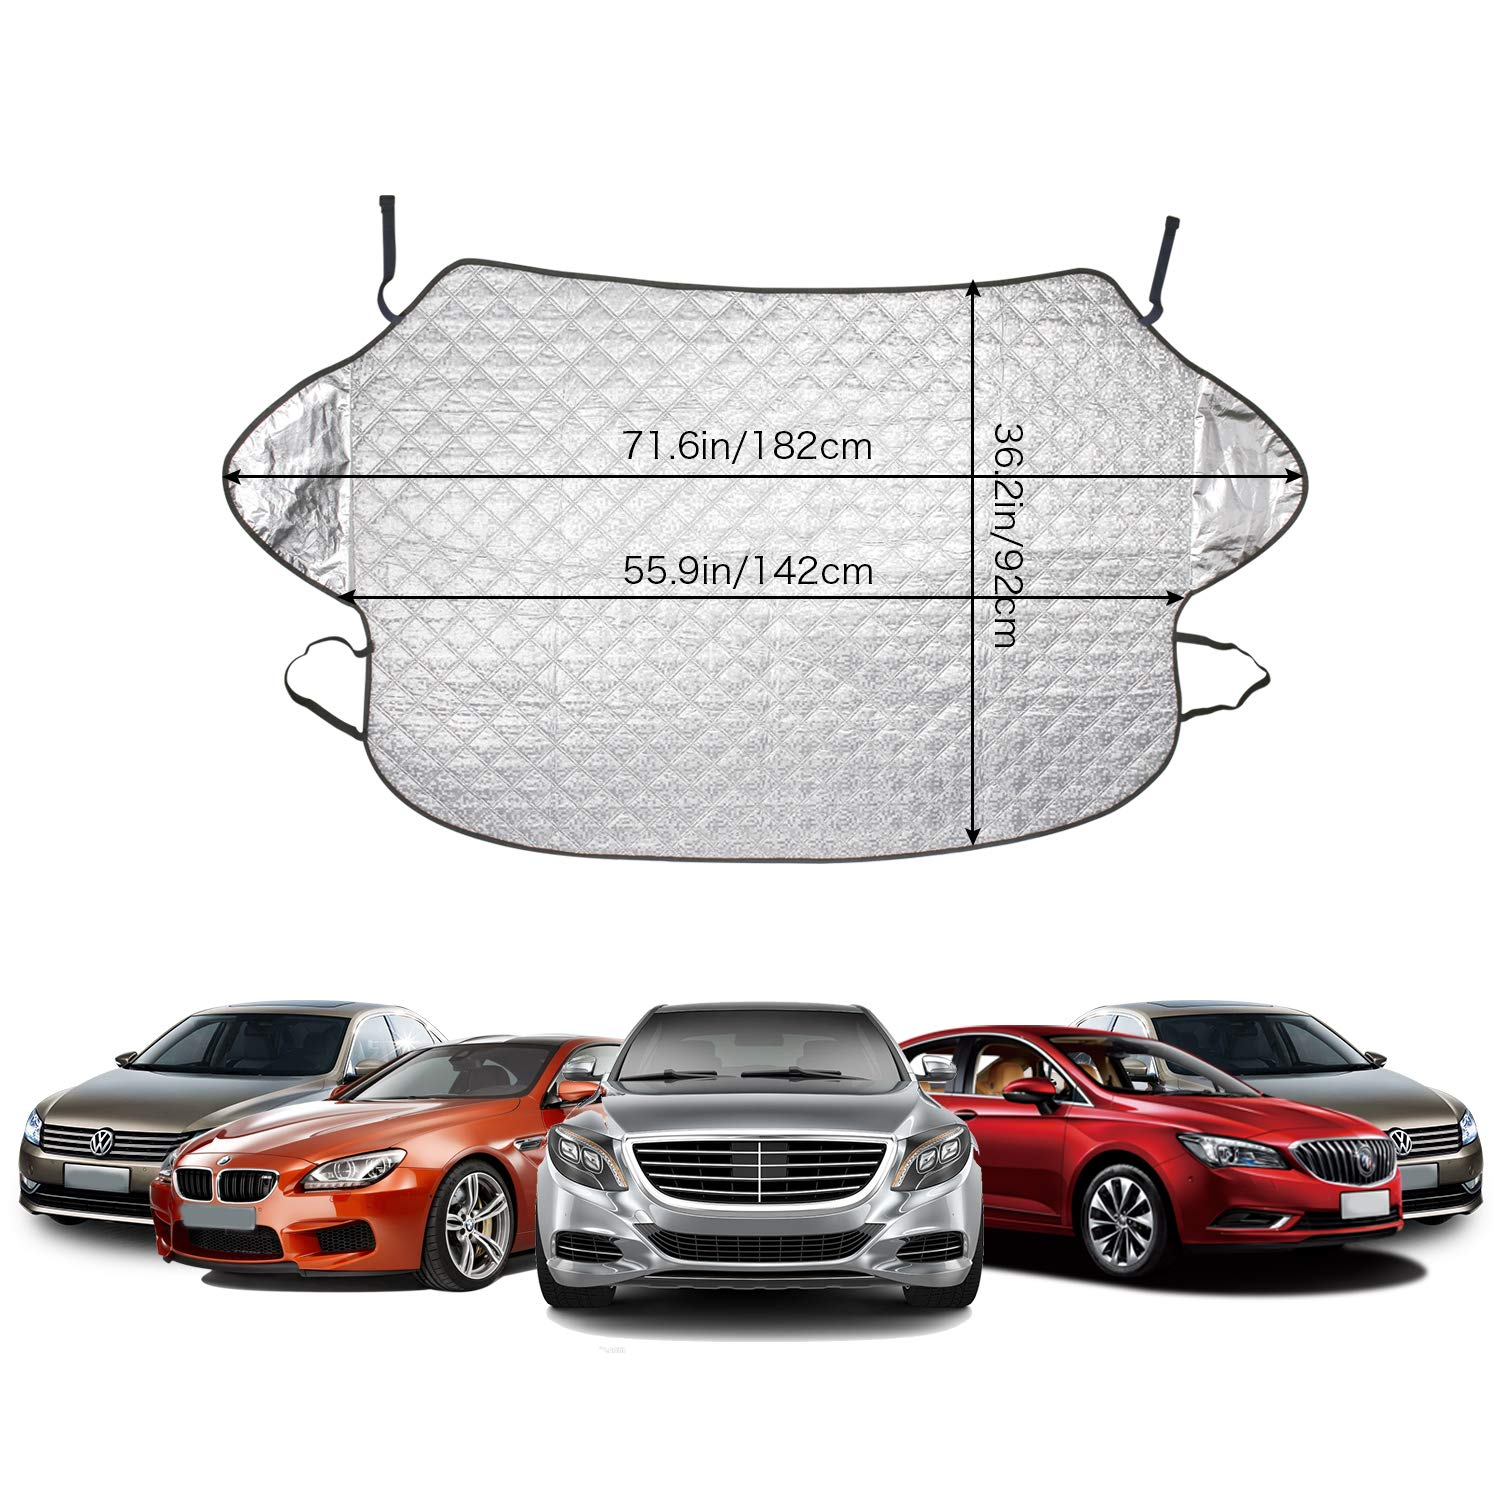 Frost Windscreen Cover Windshield Snow Cover Car Windshield Dust Cover Car Window Frost Ice Snow Protector for Summer//Winter all Weather Medium bedee Car Windscreen Snow Cover